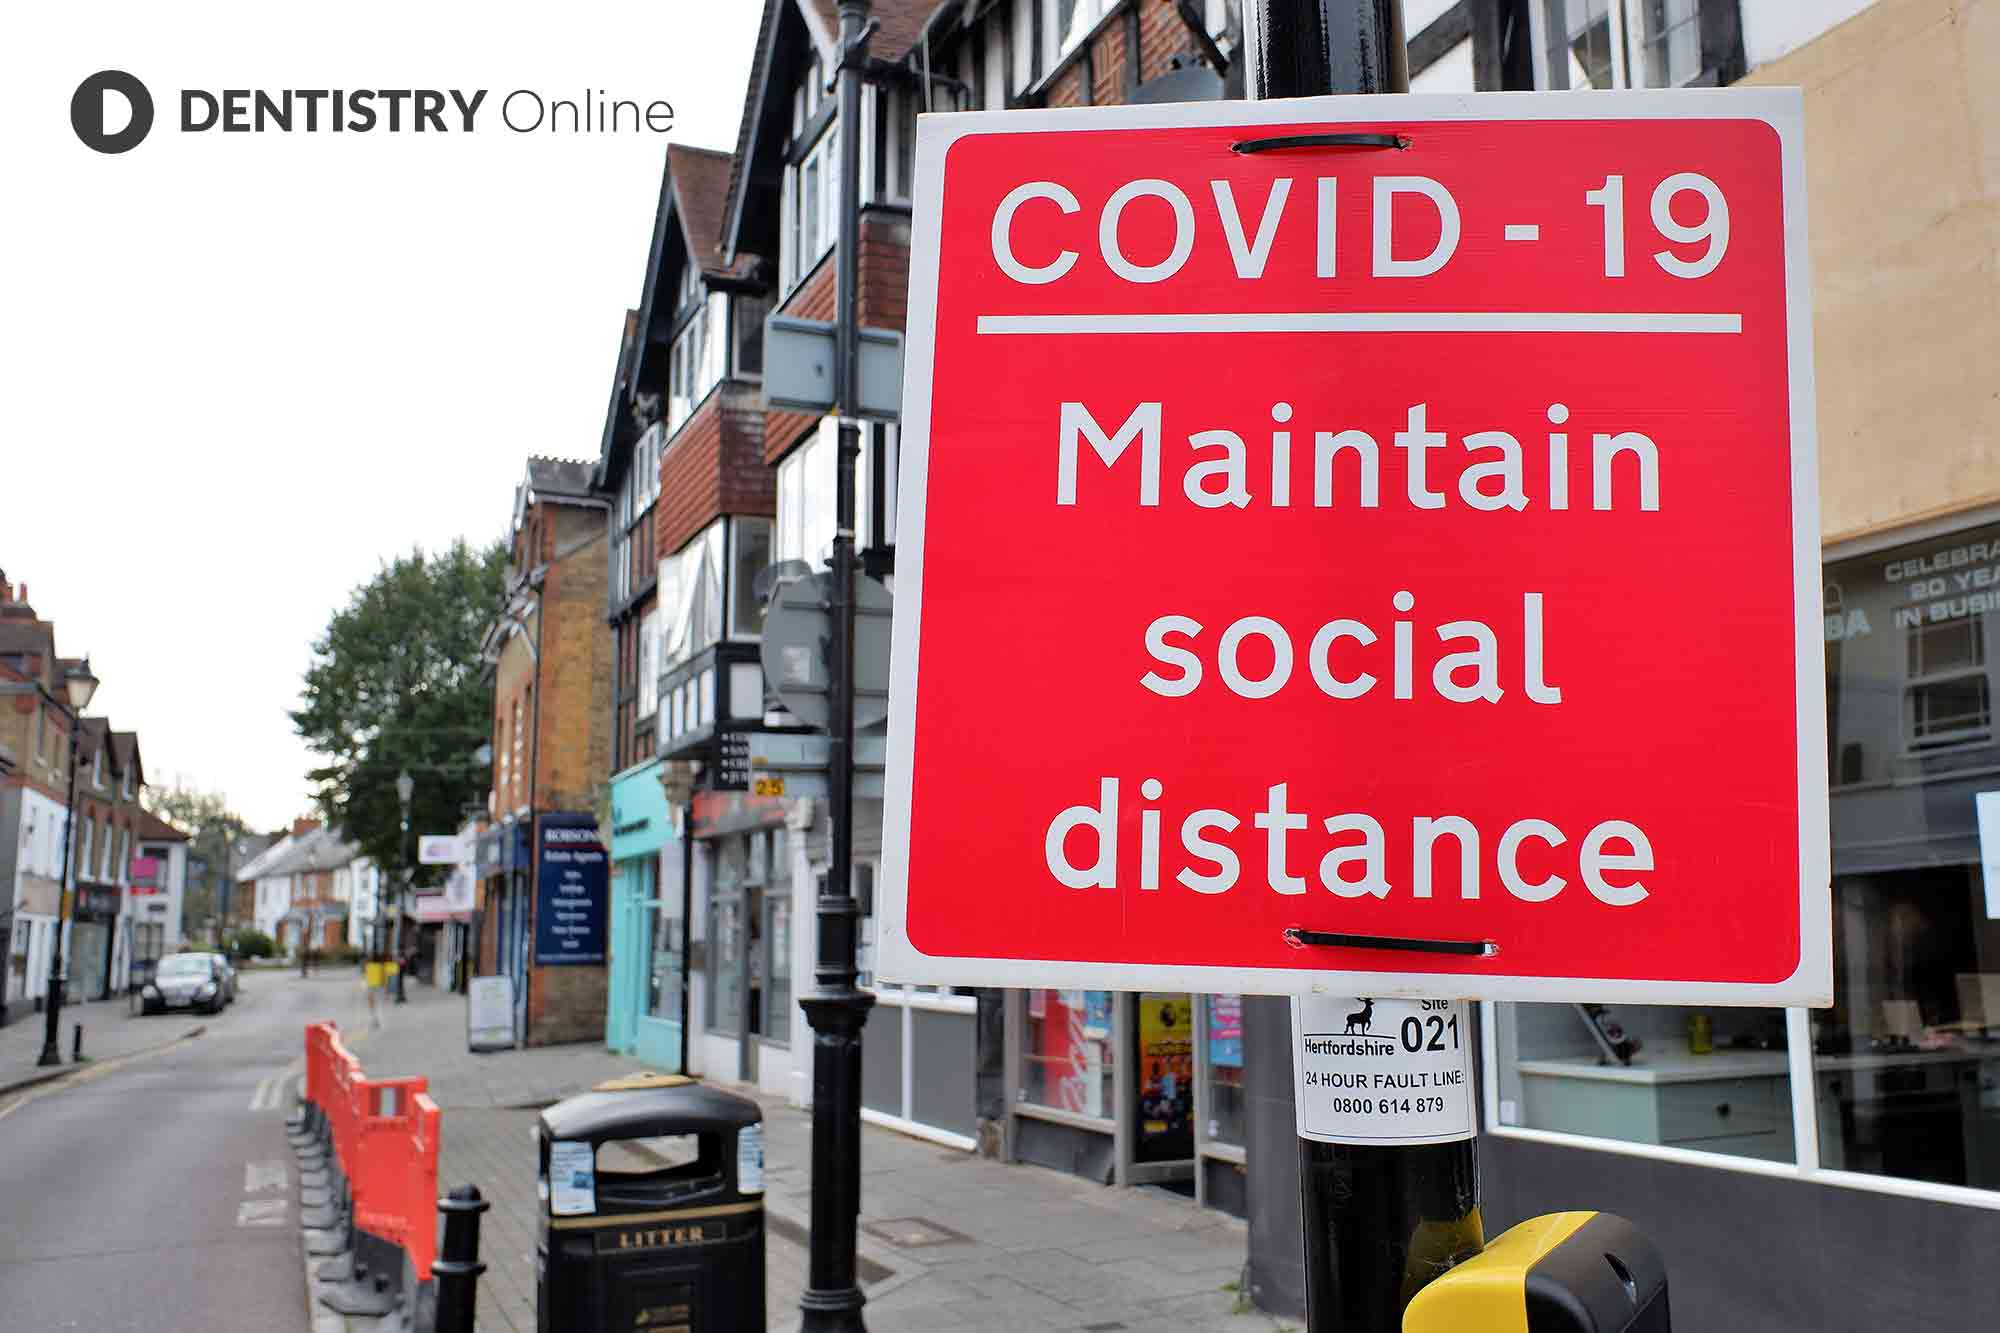 On Saturday, Prime Minister Boris Johnson announced a second lockdown and new national measures to clamp down on the surge in COVID-19 cases